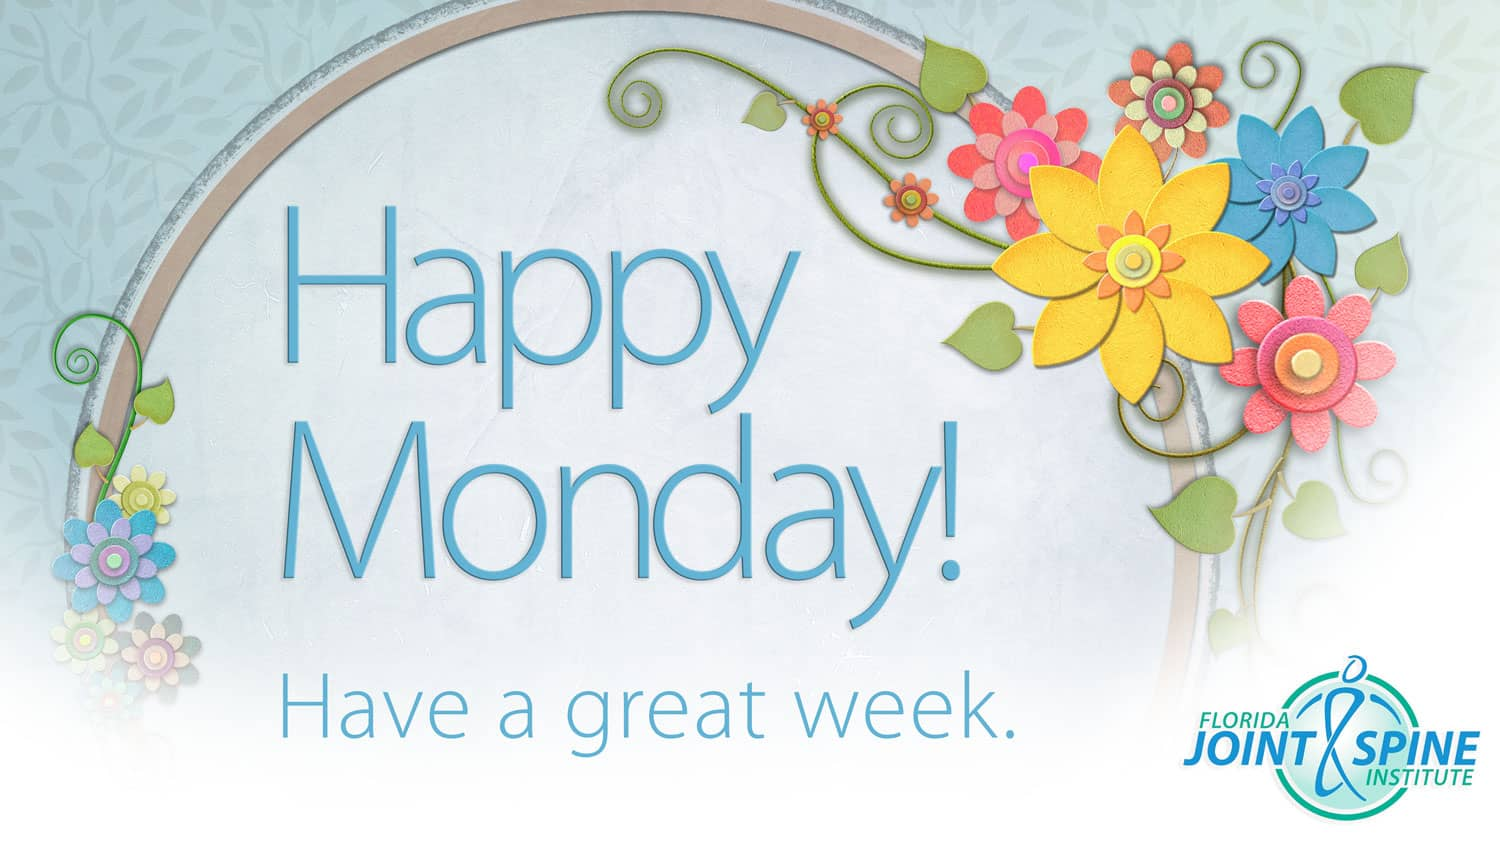 Happy Monday Florida Joint And Spine Institute